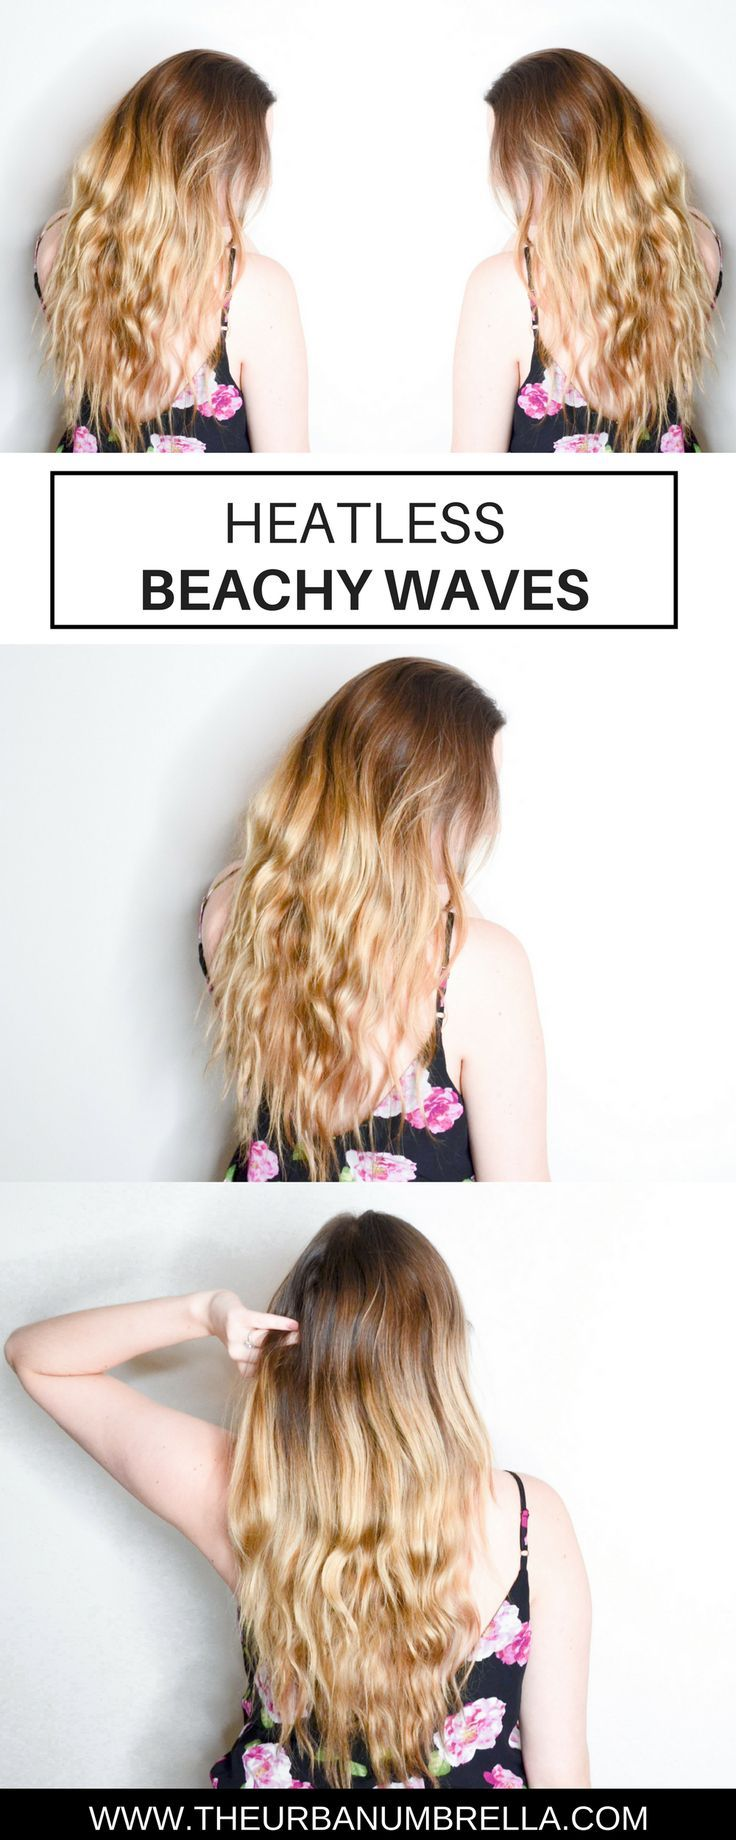 How To Get Perfect Waves And Curls Without Heat Tools Hair Without Heat Curls Without Heat How To Curl Your Hair